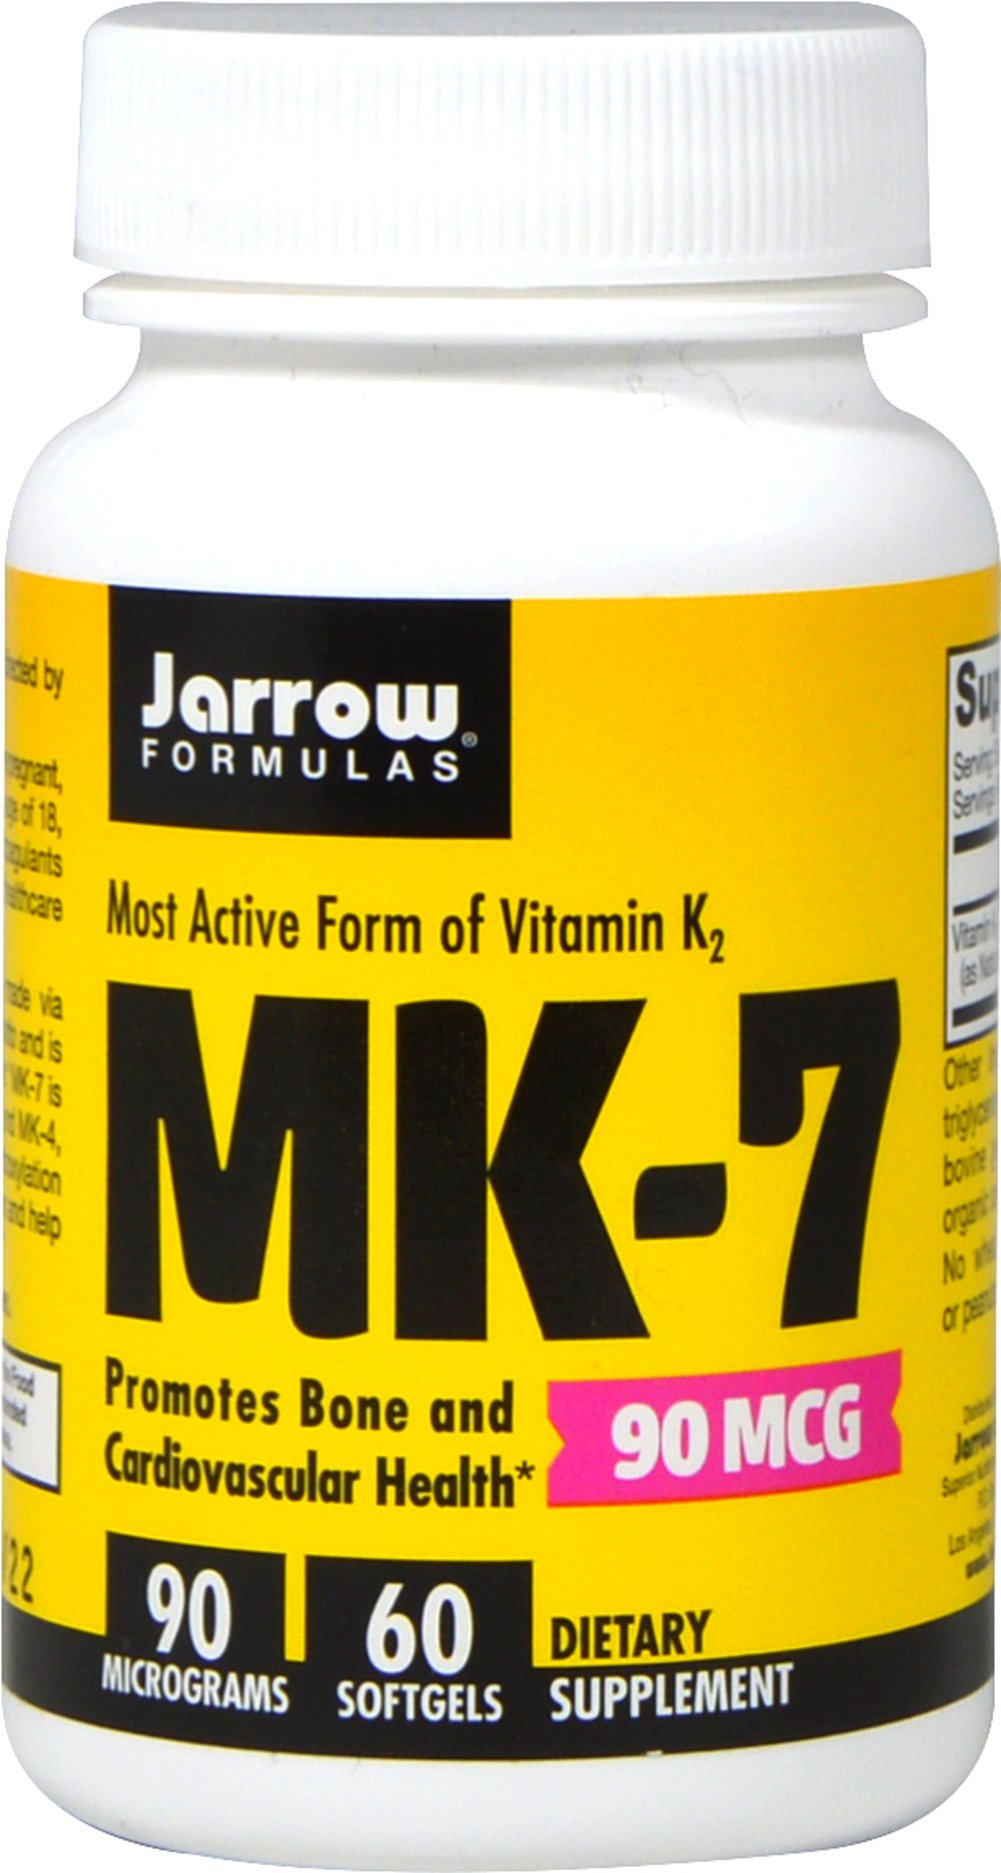 MK-7 Vitamin K2 90 mcg <p><strong>From the Manufacturer's Label:</strong></p><p>MK-7 is made via fermentation by Bacillus subtilus natto.  MK-7 (Menaquinone-7) is an enhanced bioactive form of vitamin K2 from Natto that is ten times better absorbed than K1 from spinach. MK-7 is responsible for the carboxylation of specific bone proteins needed for building bone.**</p><p>Manufactured by Jarrow Formulas®.</p> 60 Softgels 90 mcg $14.95